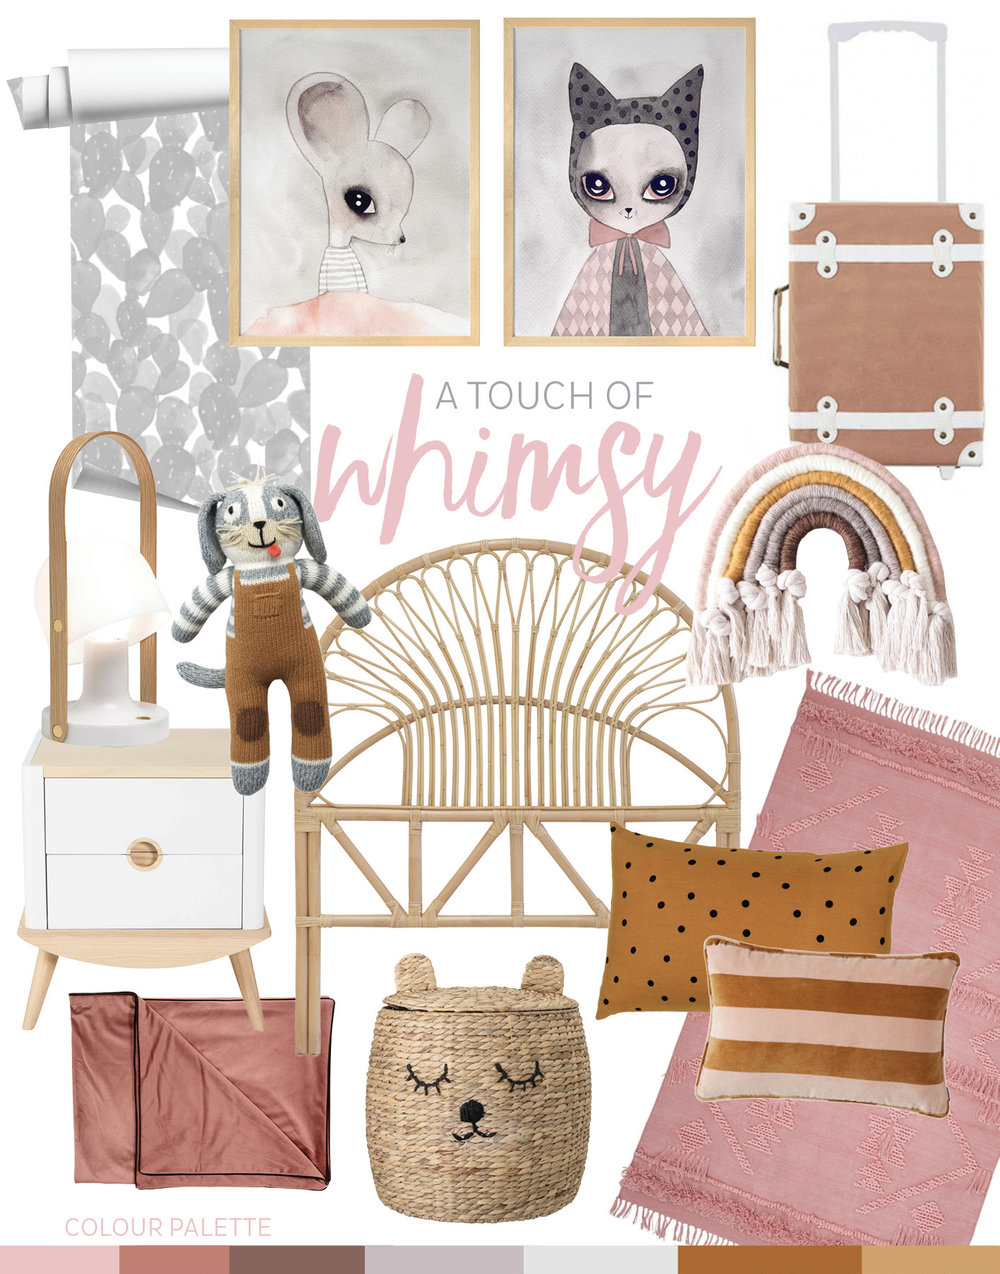 adore_home_blog_a_touch_of_whimsy_kids_room_children_girls_boys_decor_cute.jpg